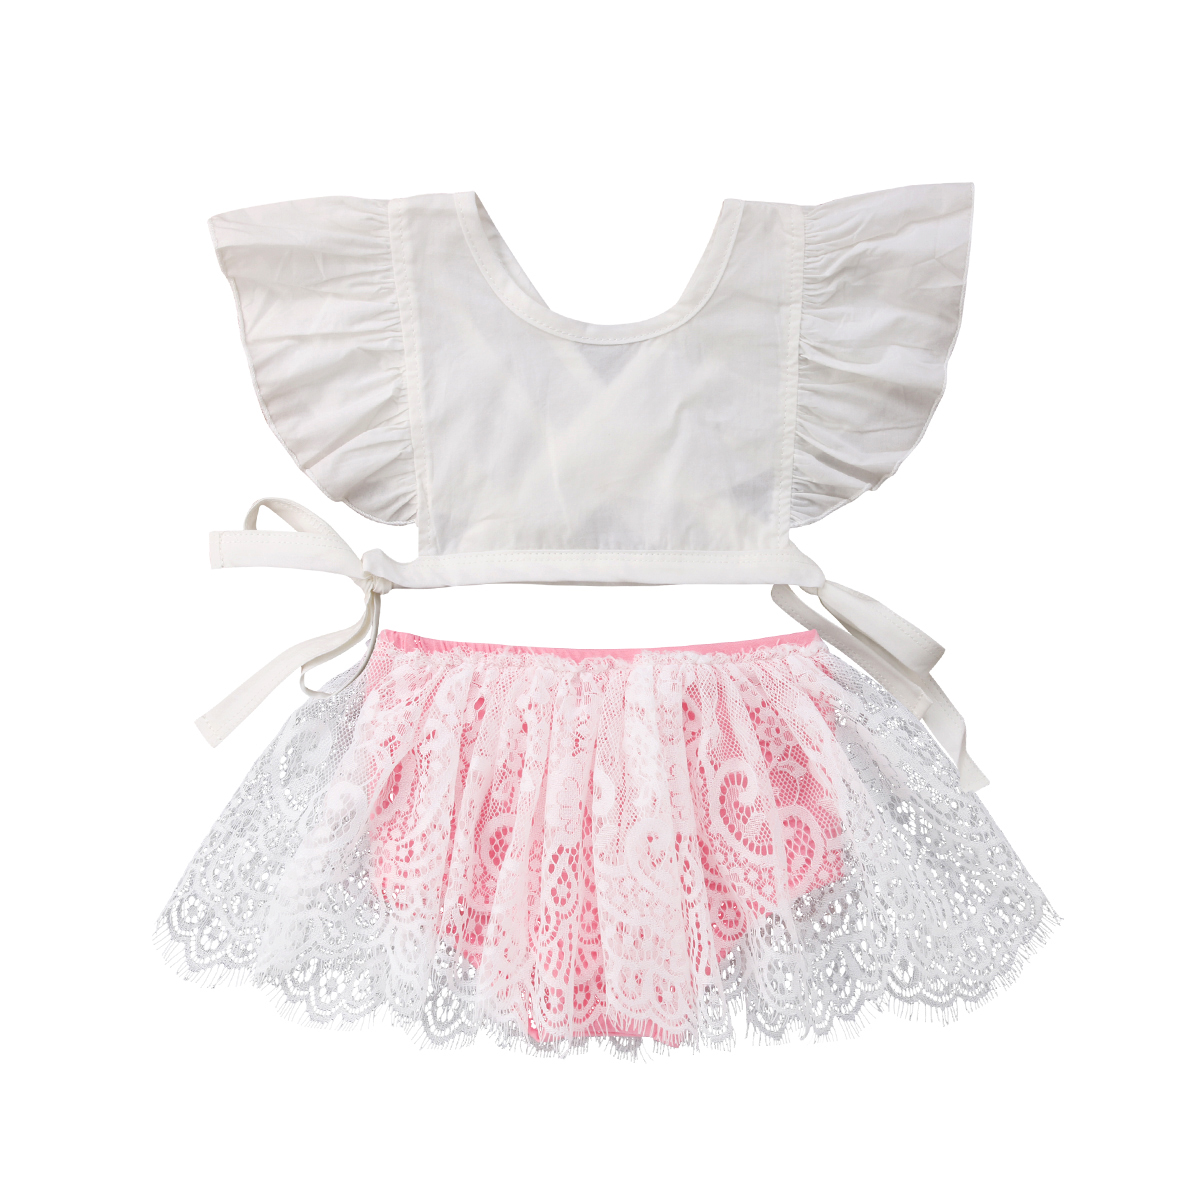 Newborn Infant Toddle Child Kids Baby Girls Clothes Sets Bare Tops Lace Tutu Shorts Princess Outfits Baby Girls 0-3T